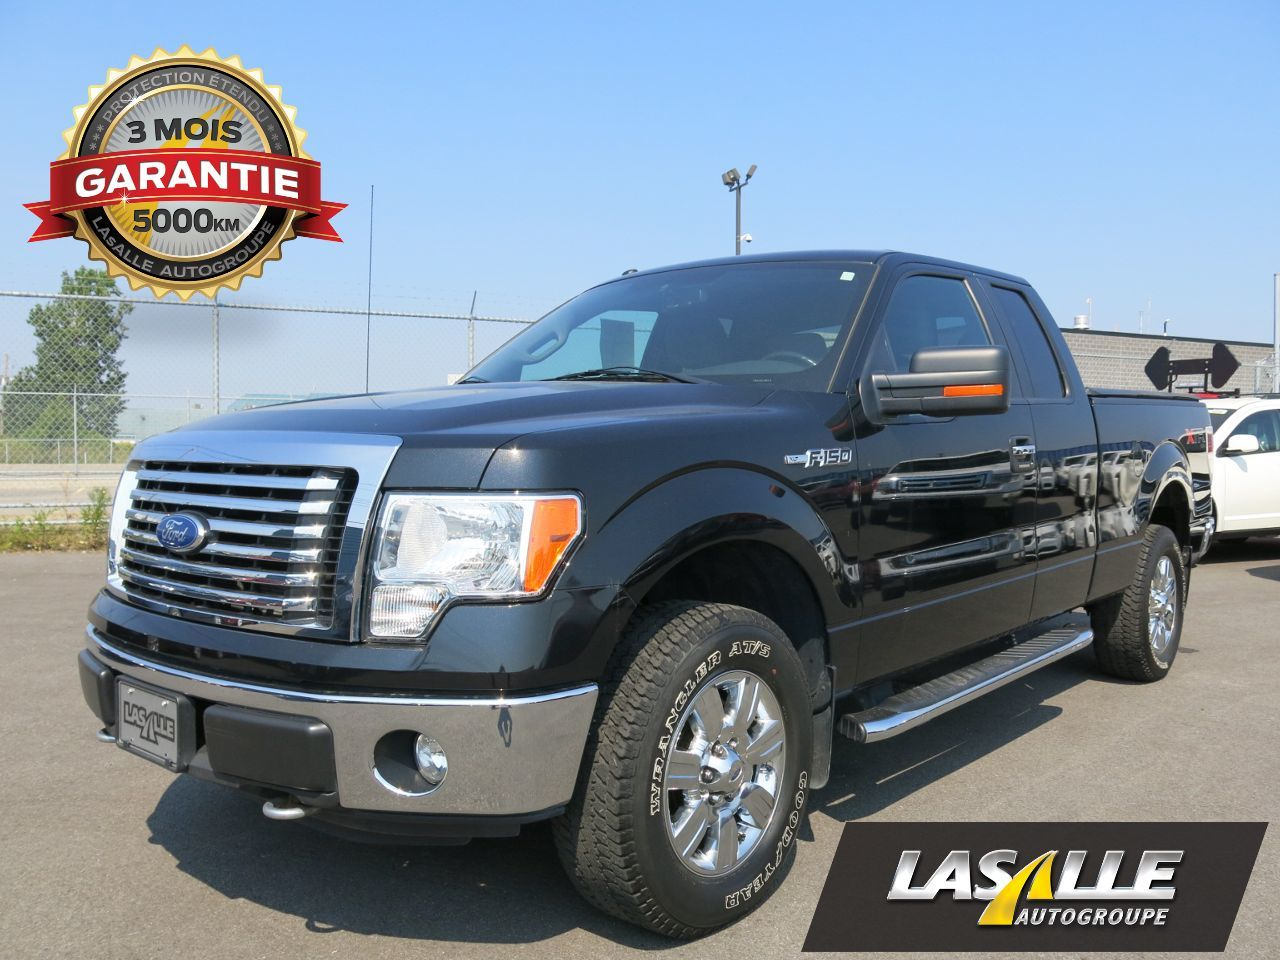 Used 2011 Ford F-150 XLT 4X4 sold in Montreal | LaSalle Ford